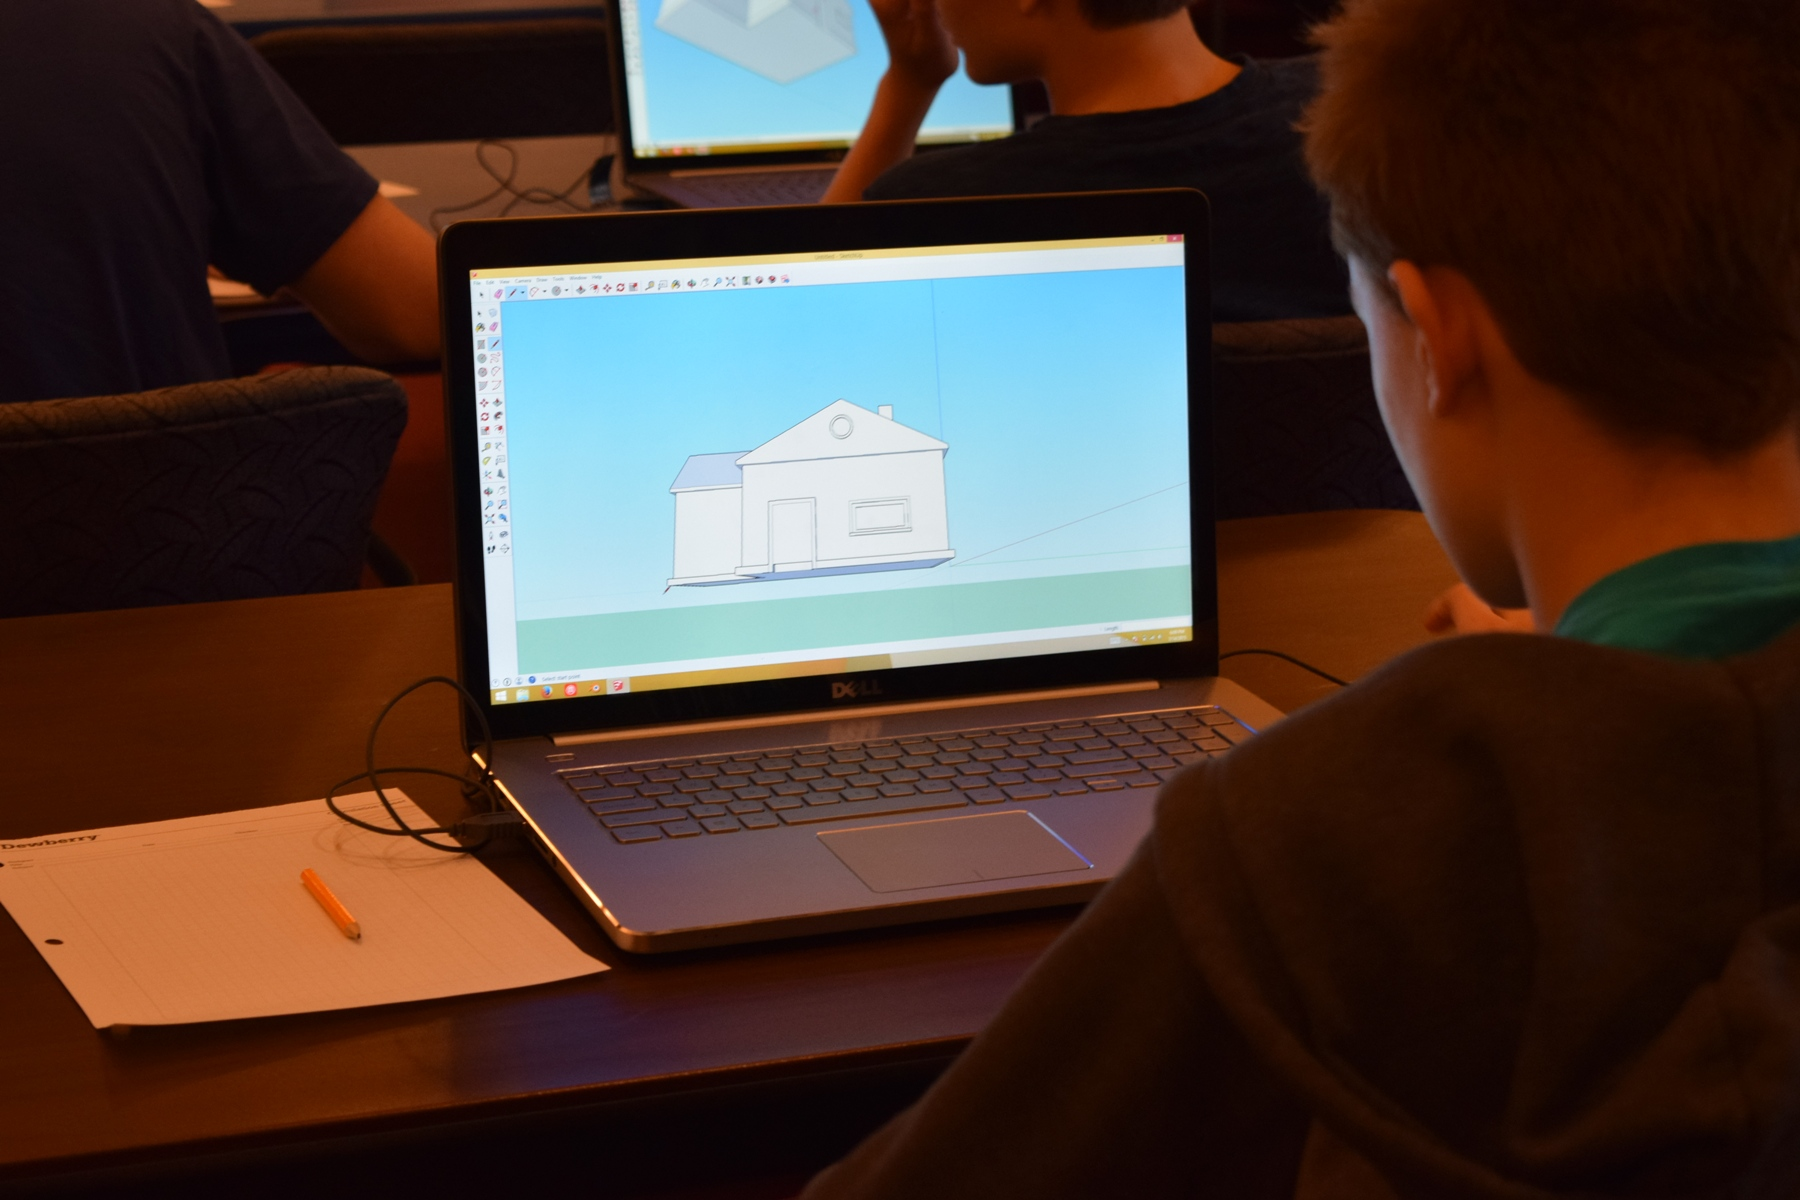 Participant uses Sketchup software to create a 3D object for printing